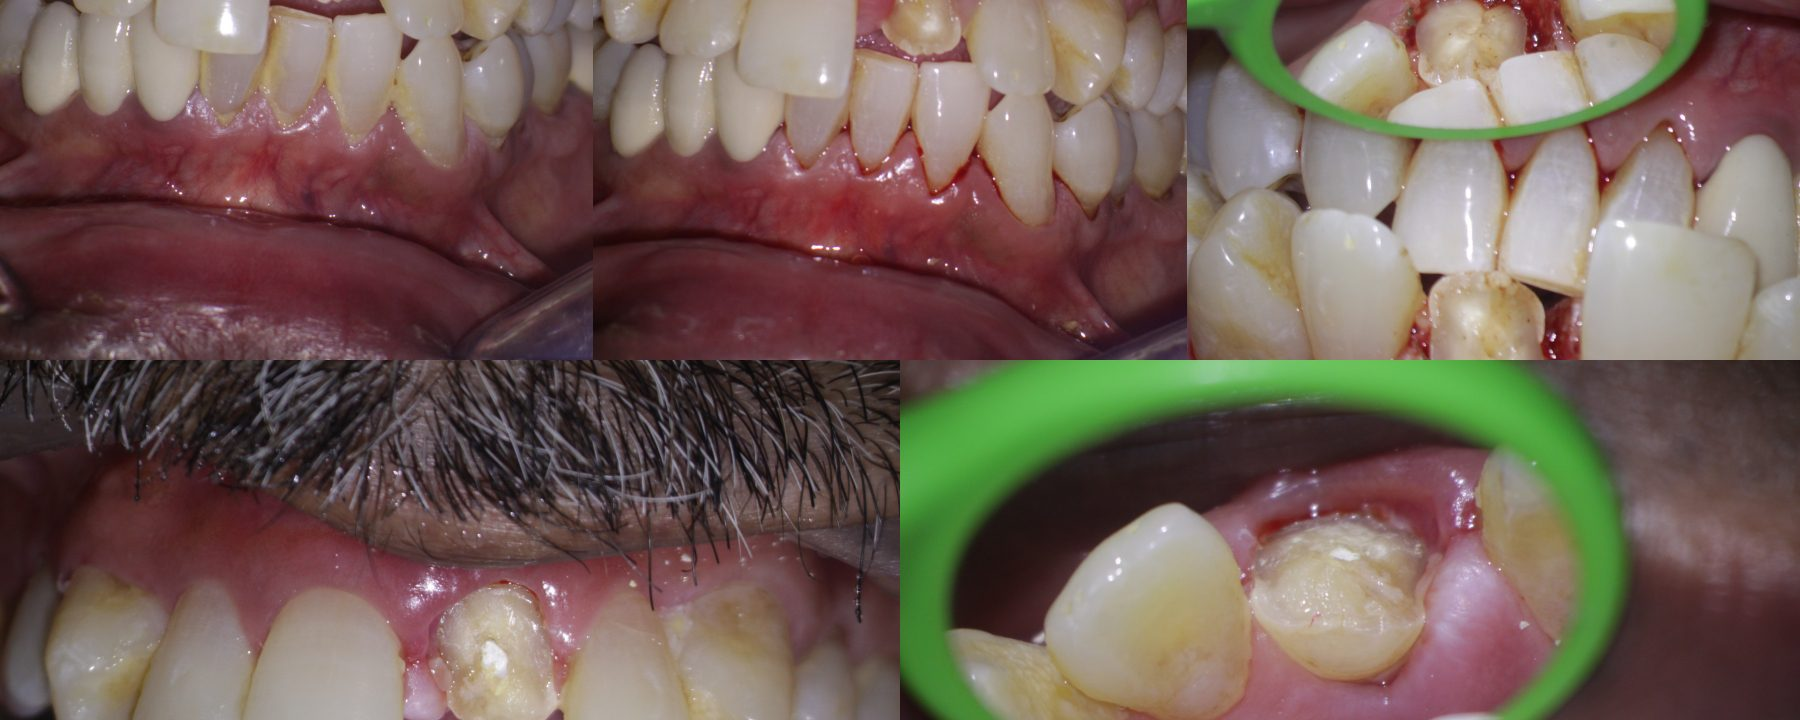 Crown fracture extending sub-gingival